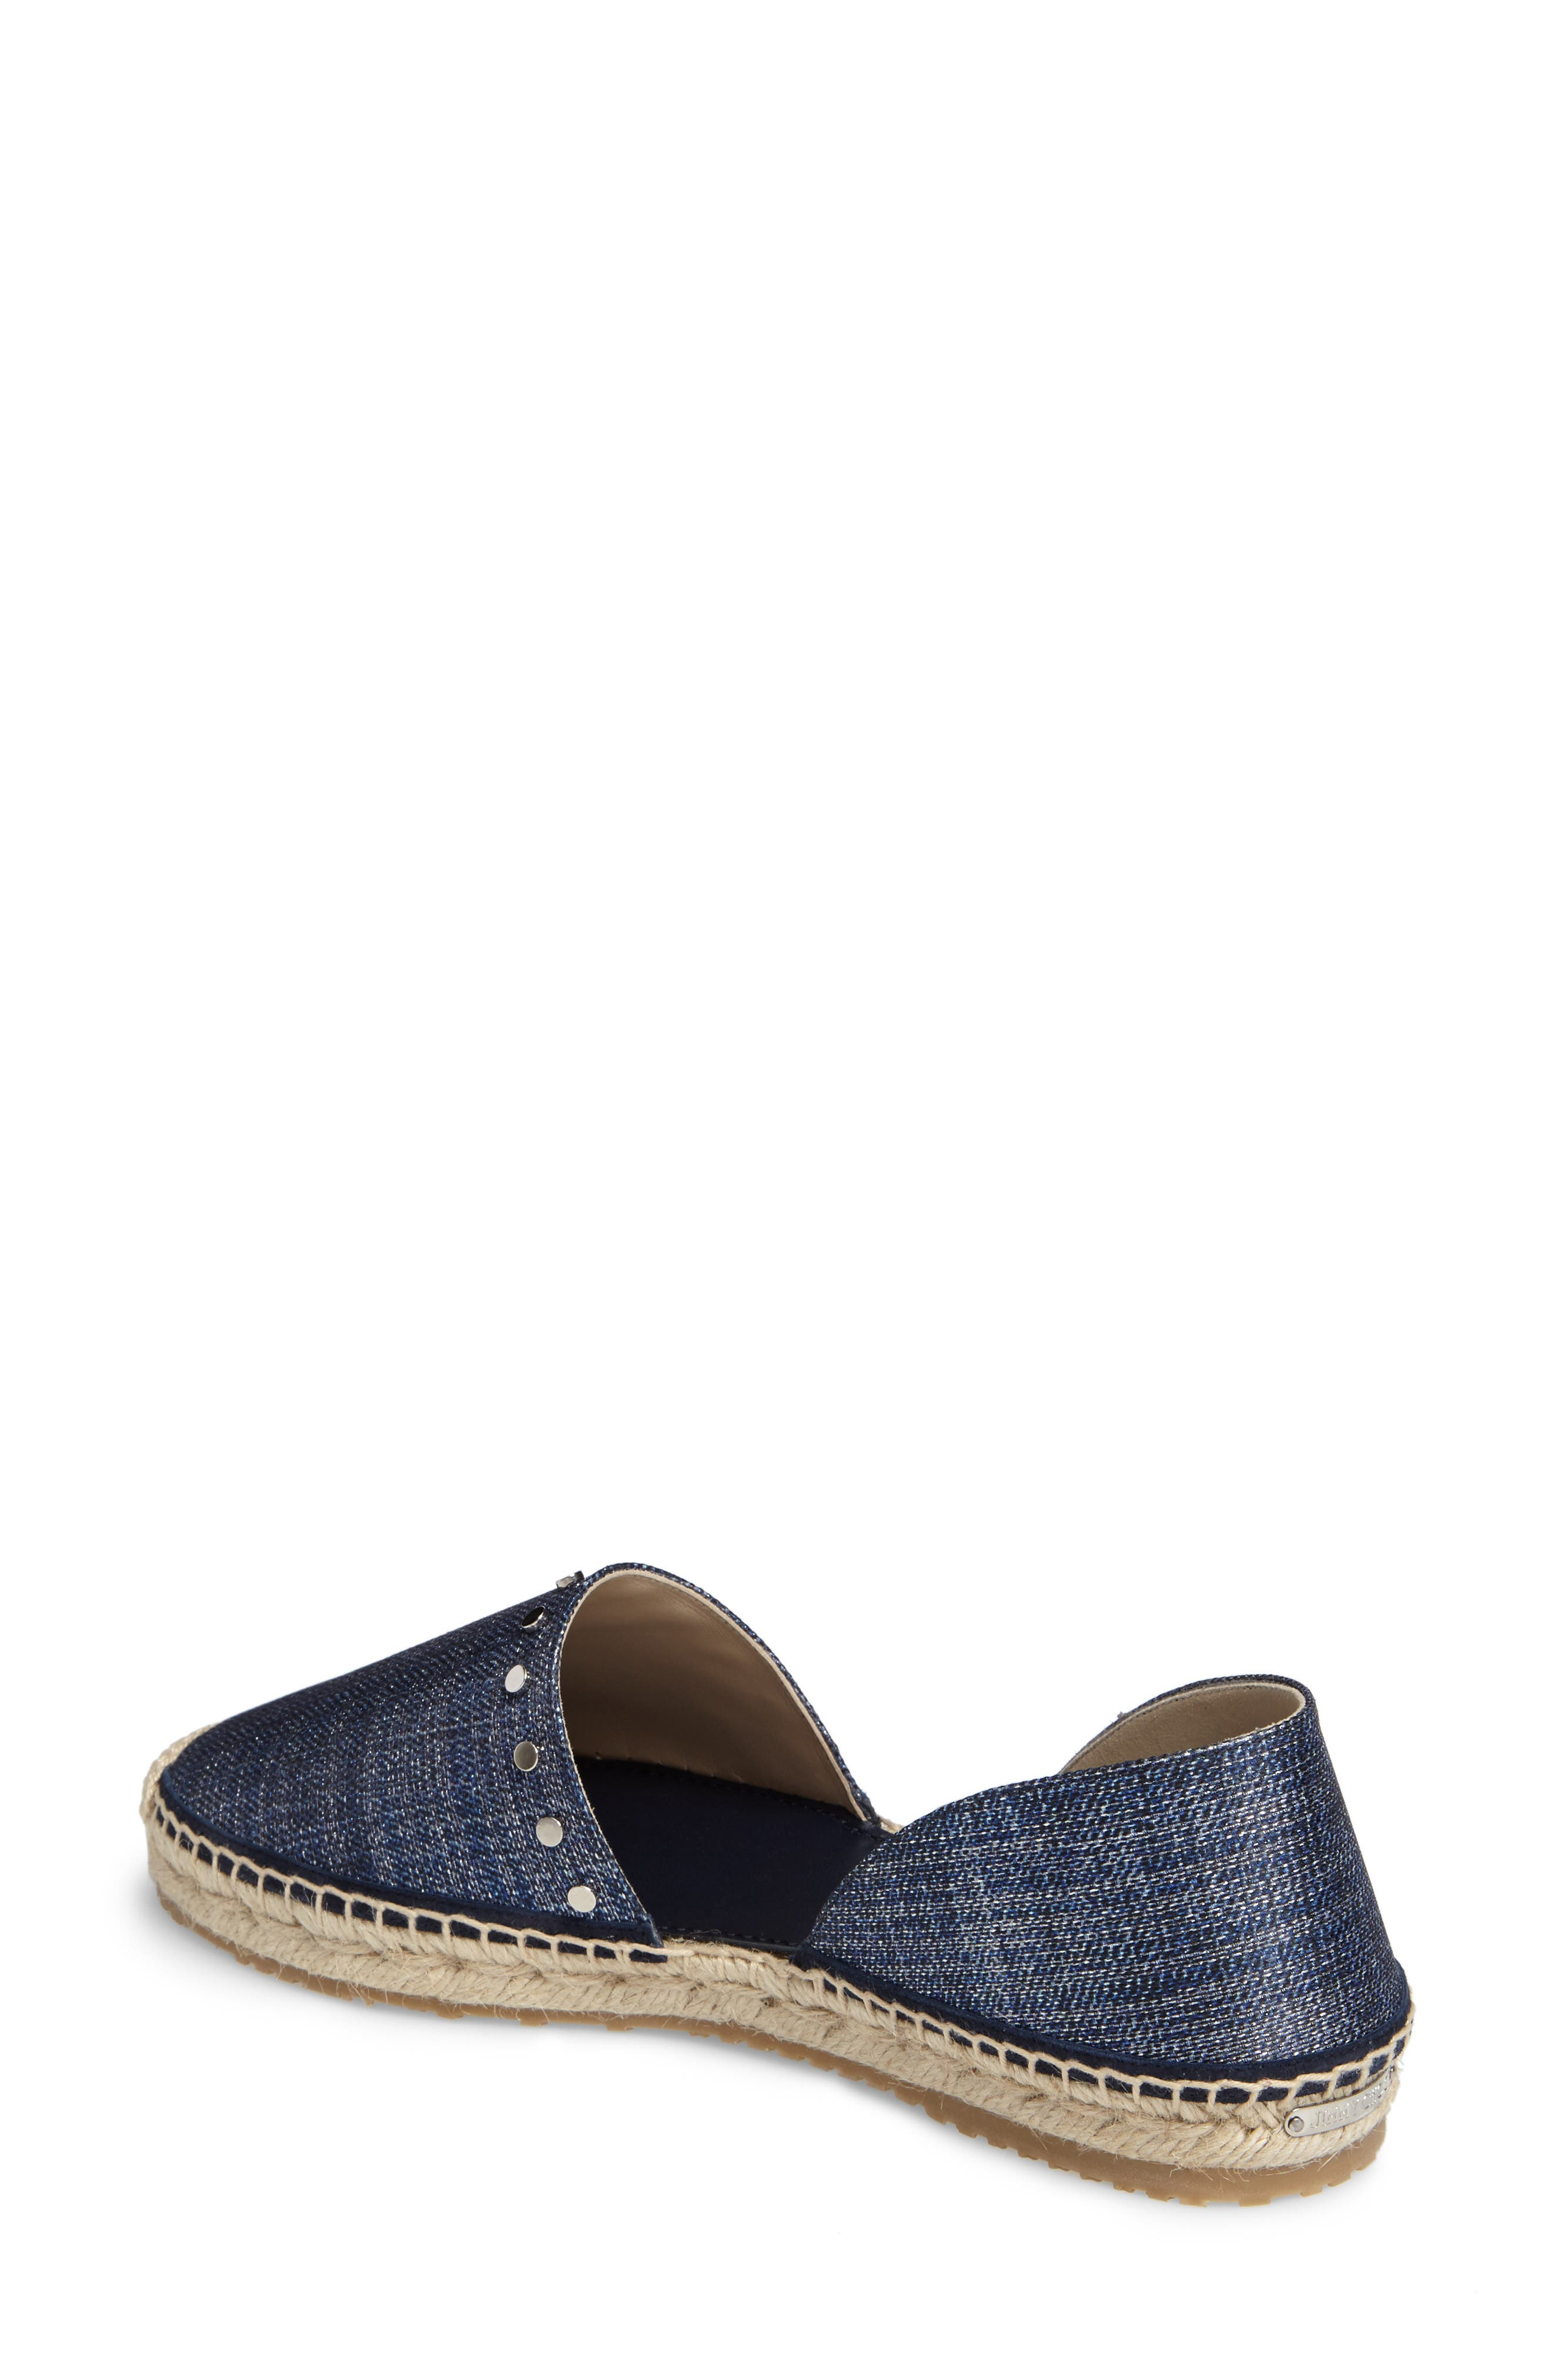 Alternate Image 2  - Jimmy Choo Split Espadrille Flat (Women)